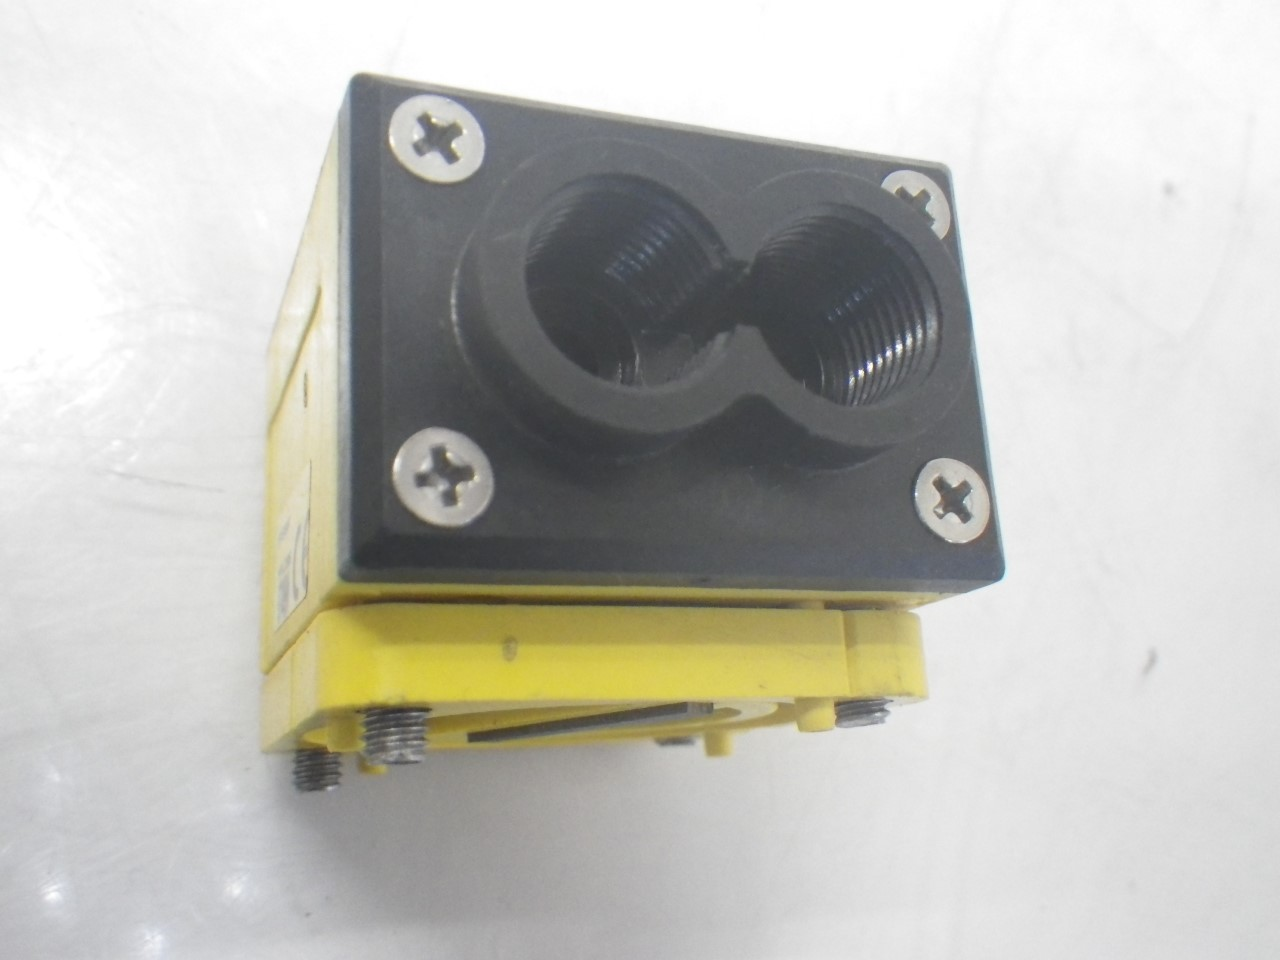 IMGP8425RSBF Banner Maxi-beam Photoelectric Sensor Head #9749A (Used Tested) (1)